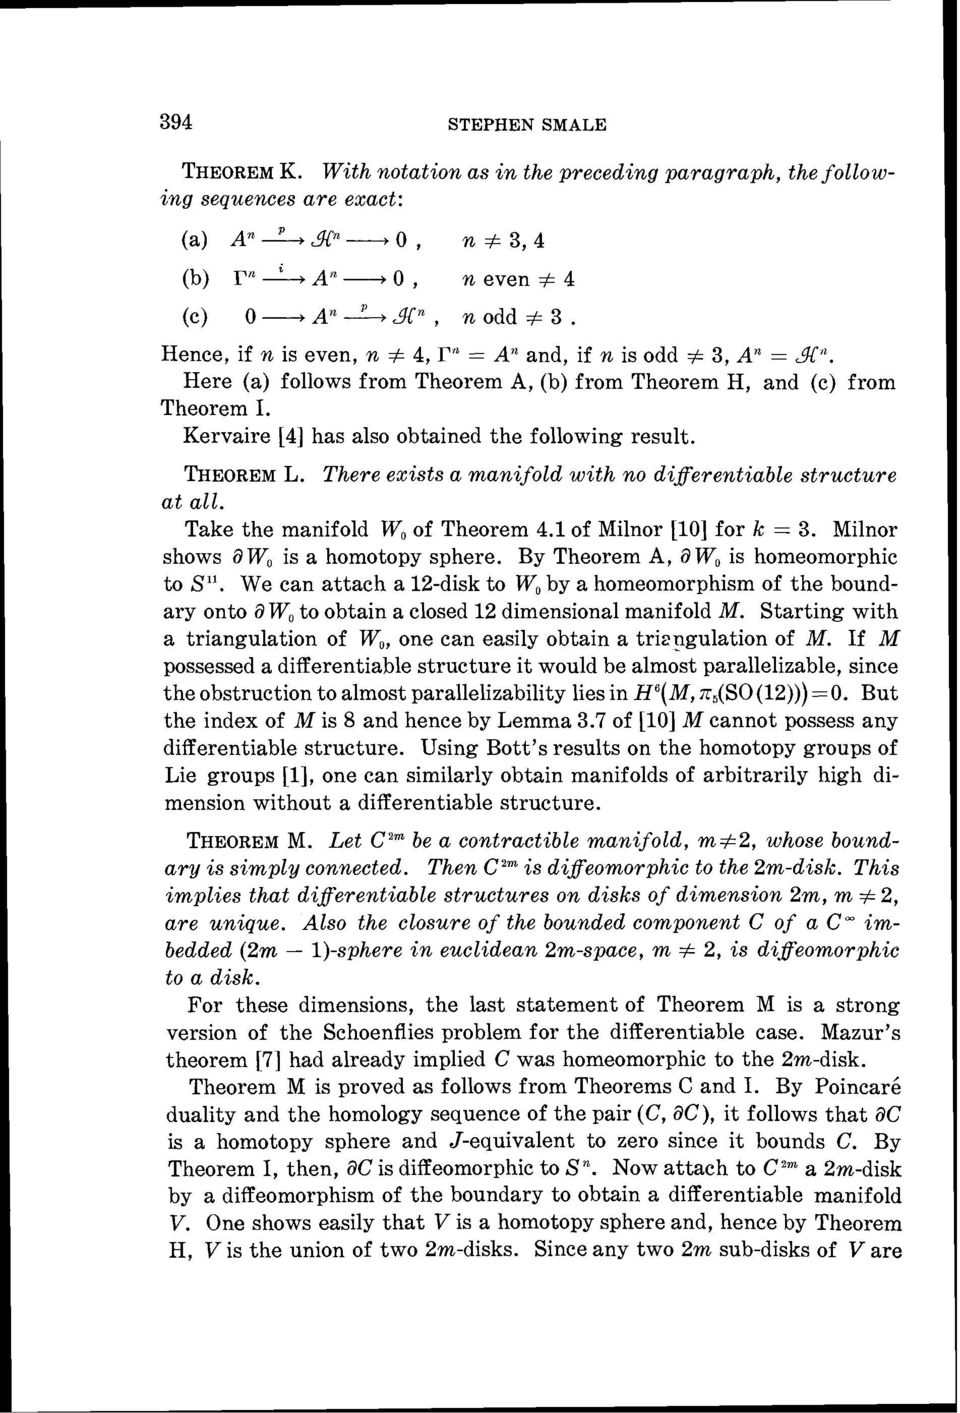 THEOREML. There exists a manifold with no diferentiable structure at all. Take the manifold Wo of Theorem 4.1 of Milnor [lo] for k = 3. Milnor shows O Wo is a homotopy sphere.